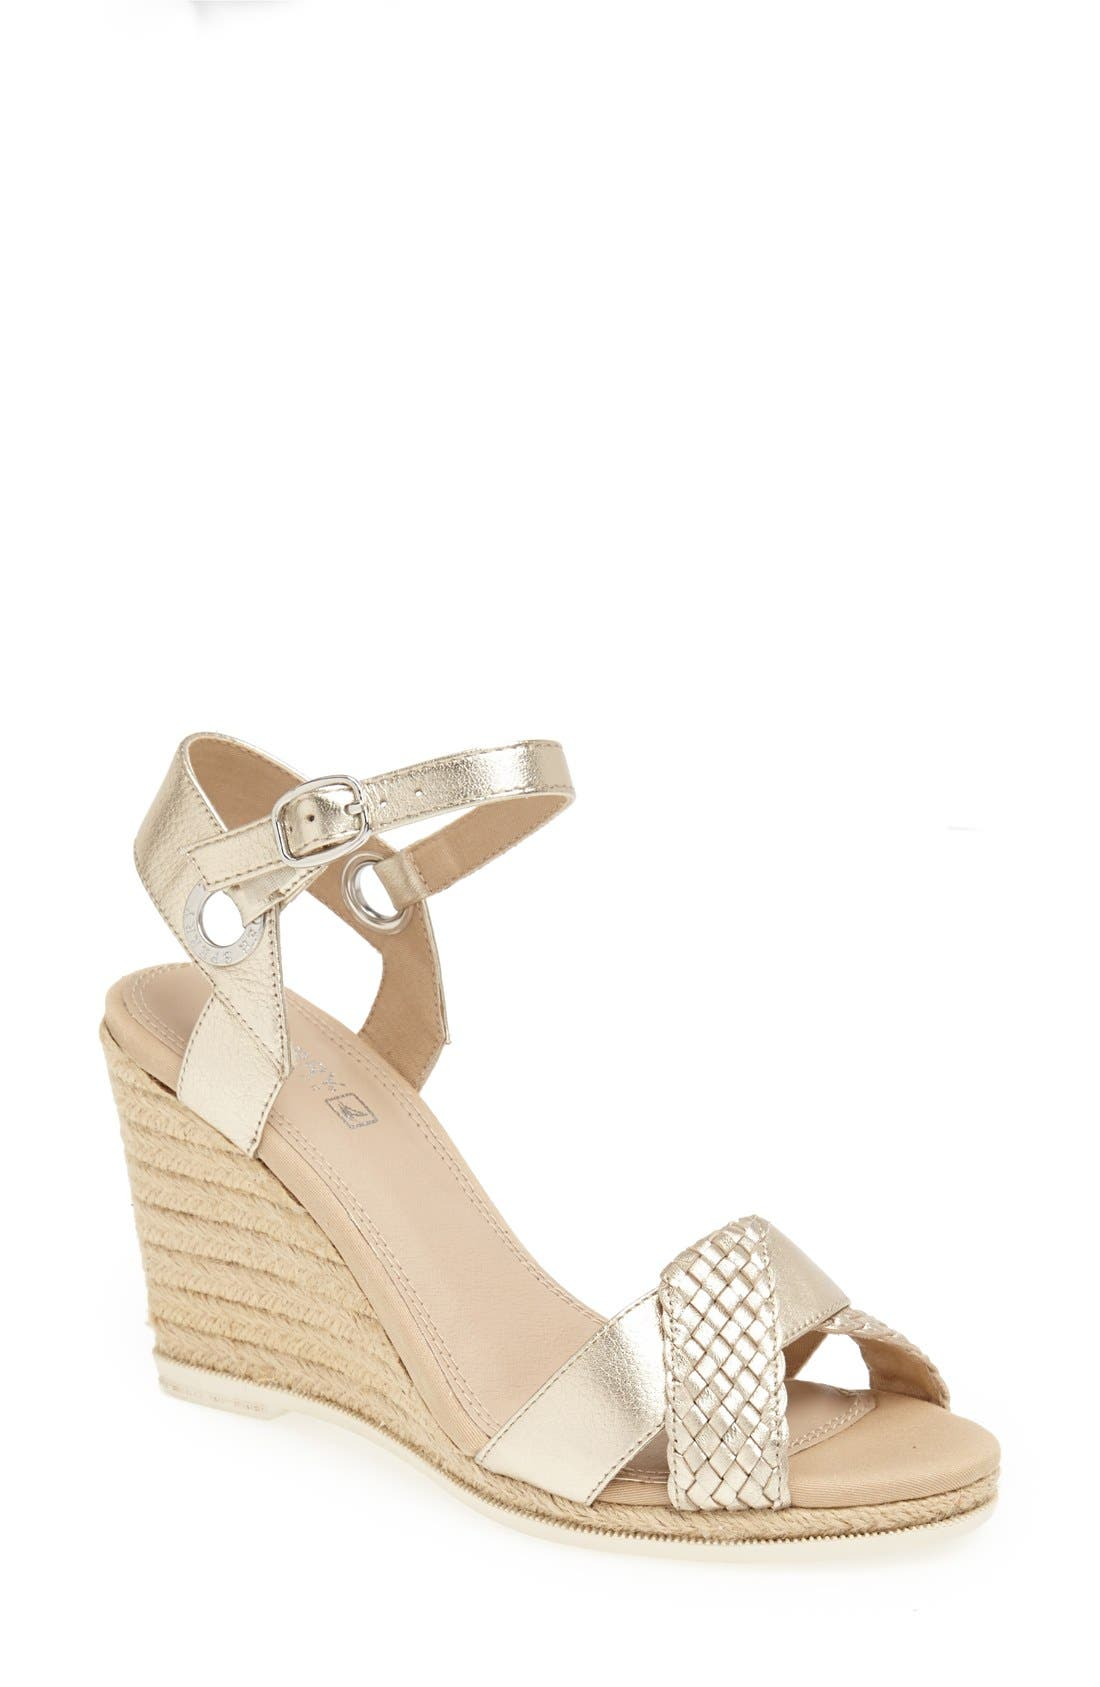 Alternate Image 1 Selected - Sperry Top-Sider® 'Saylor' Wedge Sandal (Women)